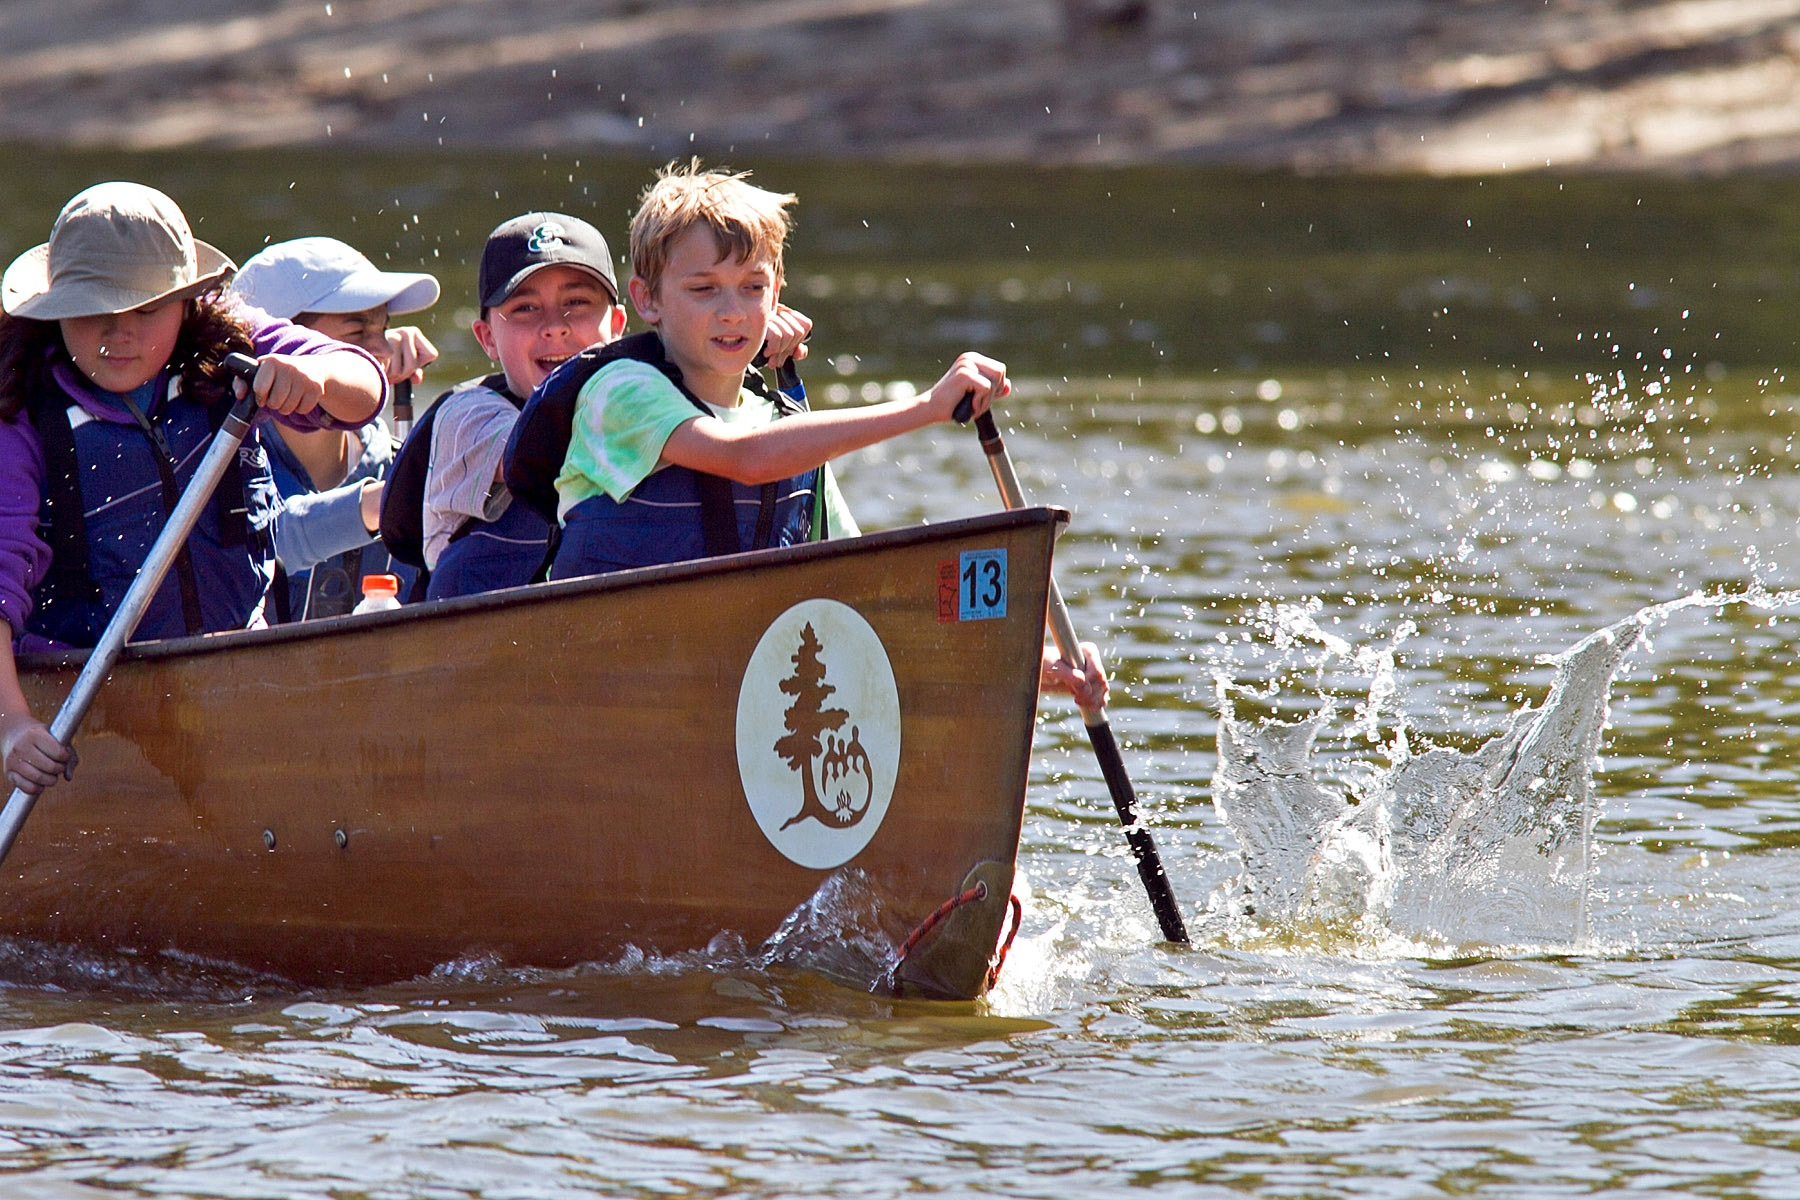 Four participants in the bow of a Voyageur canoe paddle together, making the water splash.